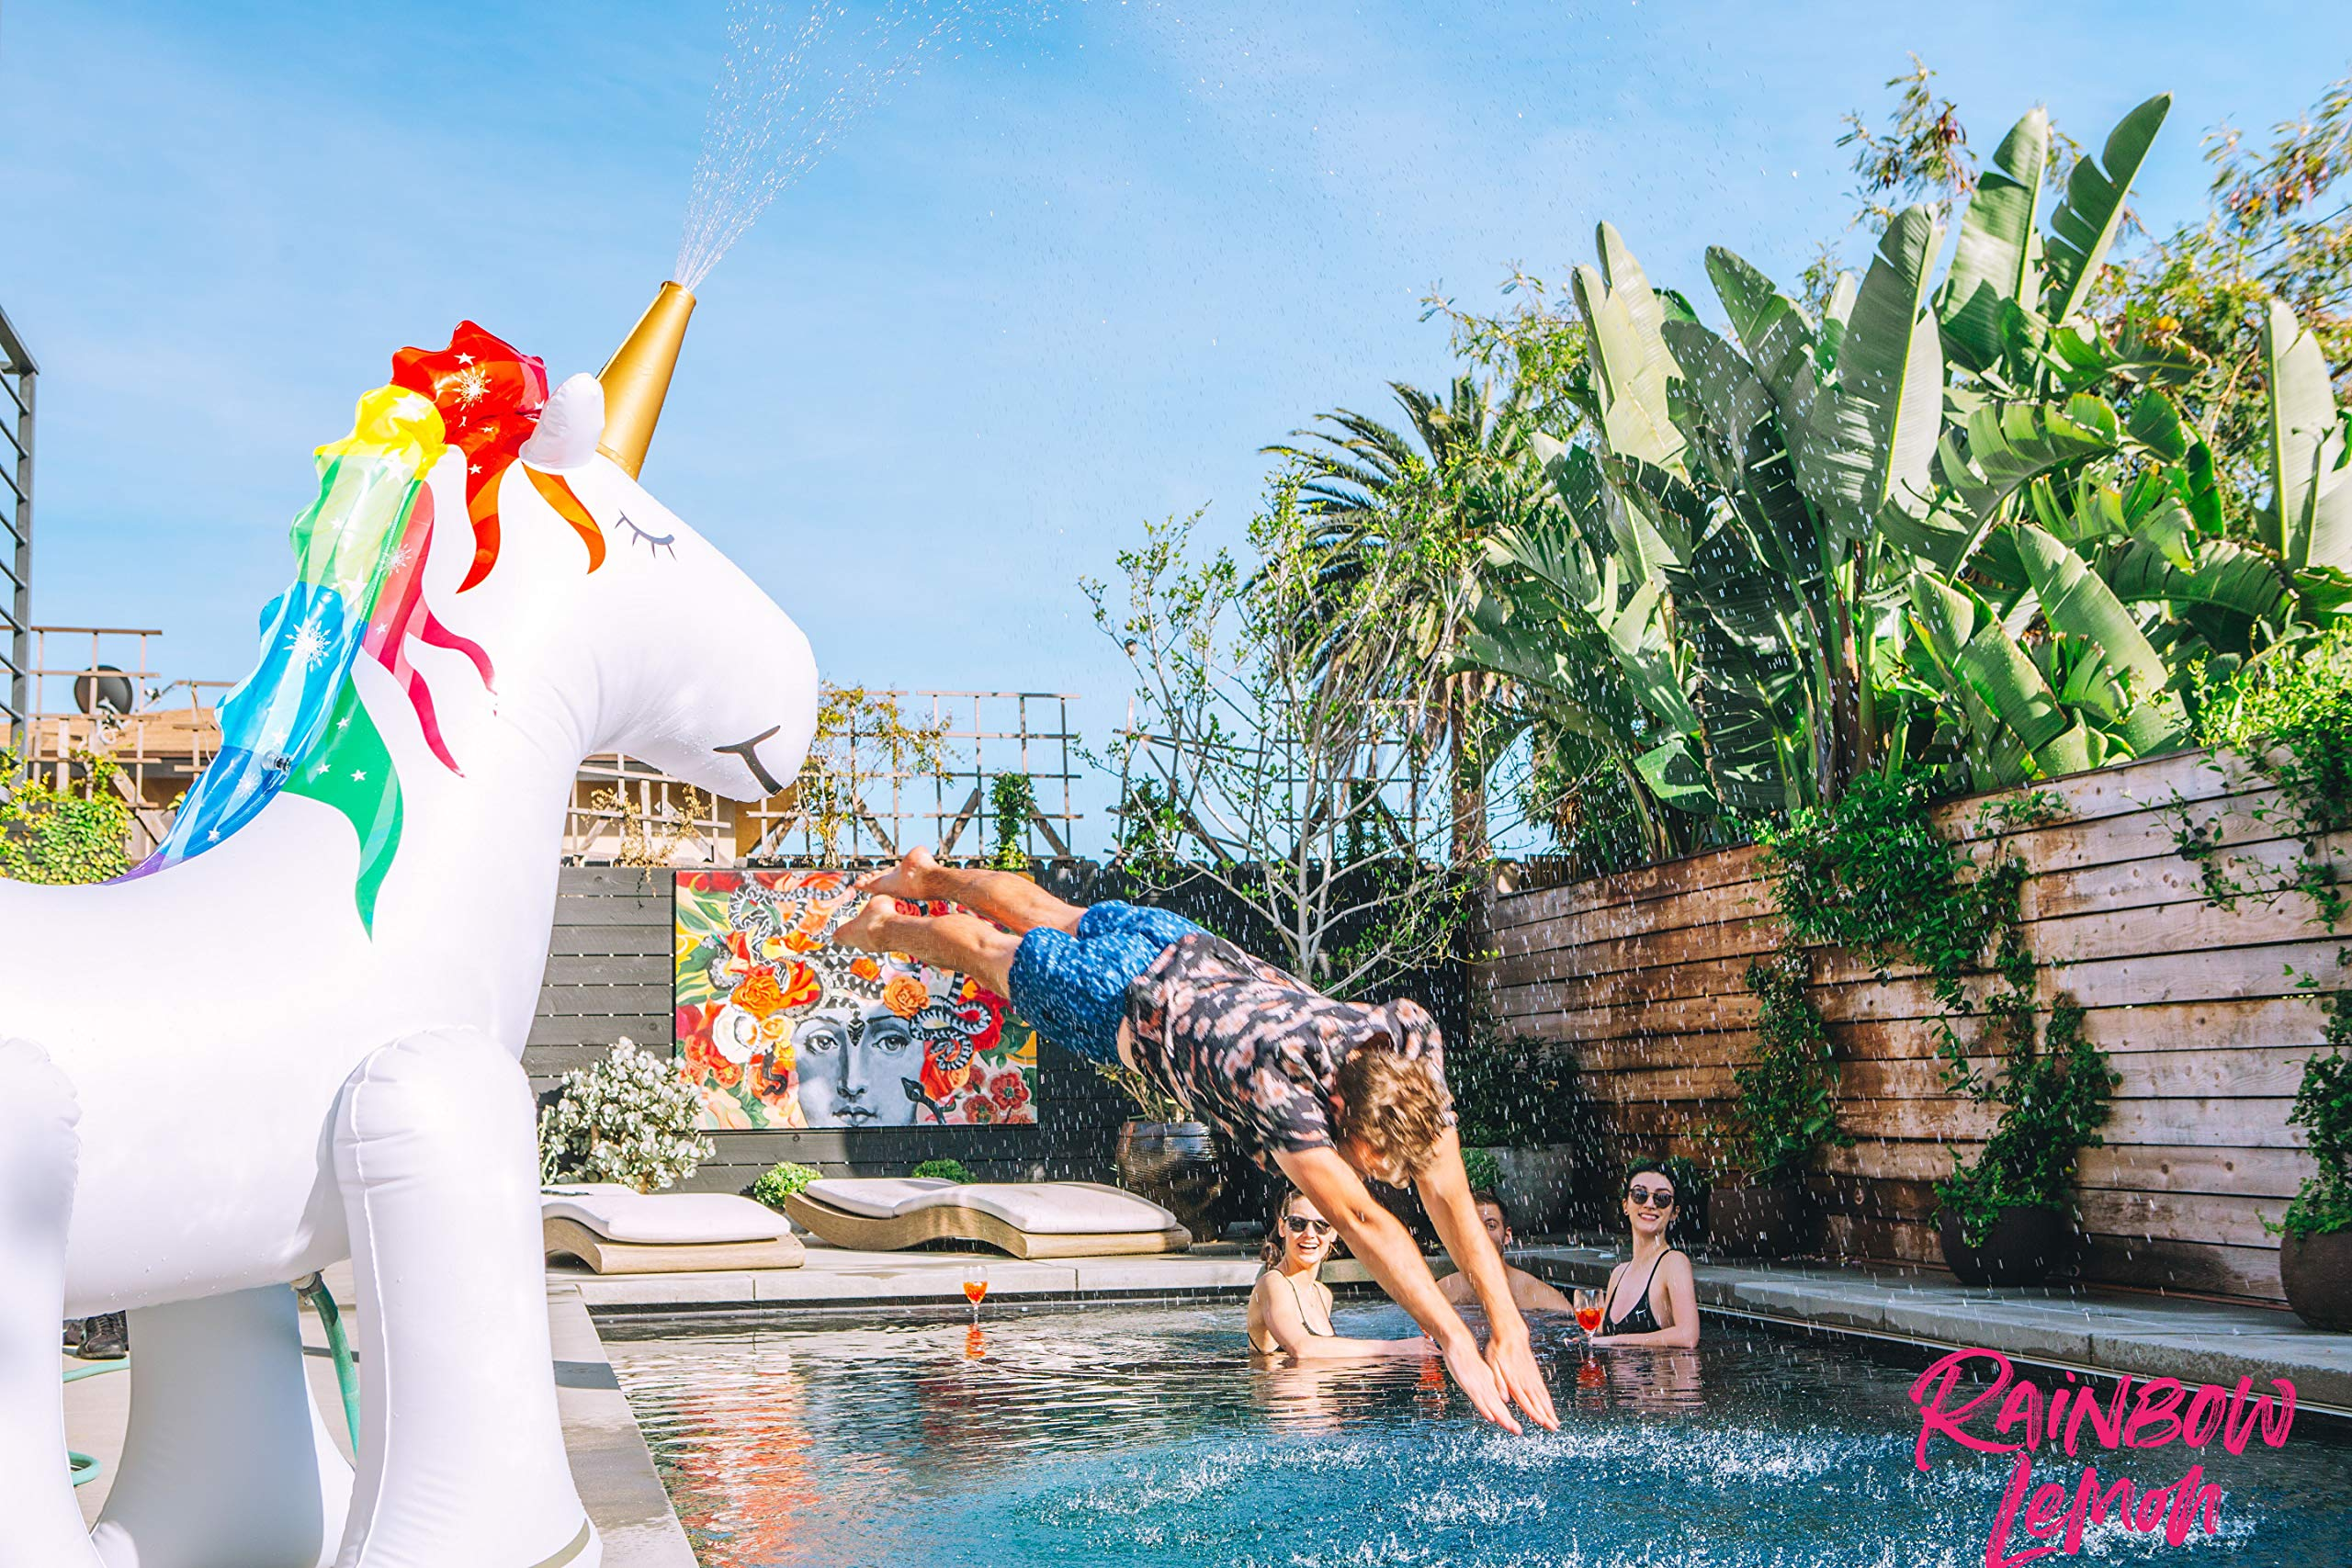 Rainbow Lemon Giant Inflatable Unicorn Sprinkler 7